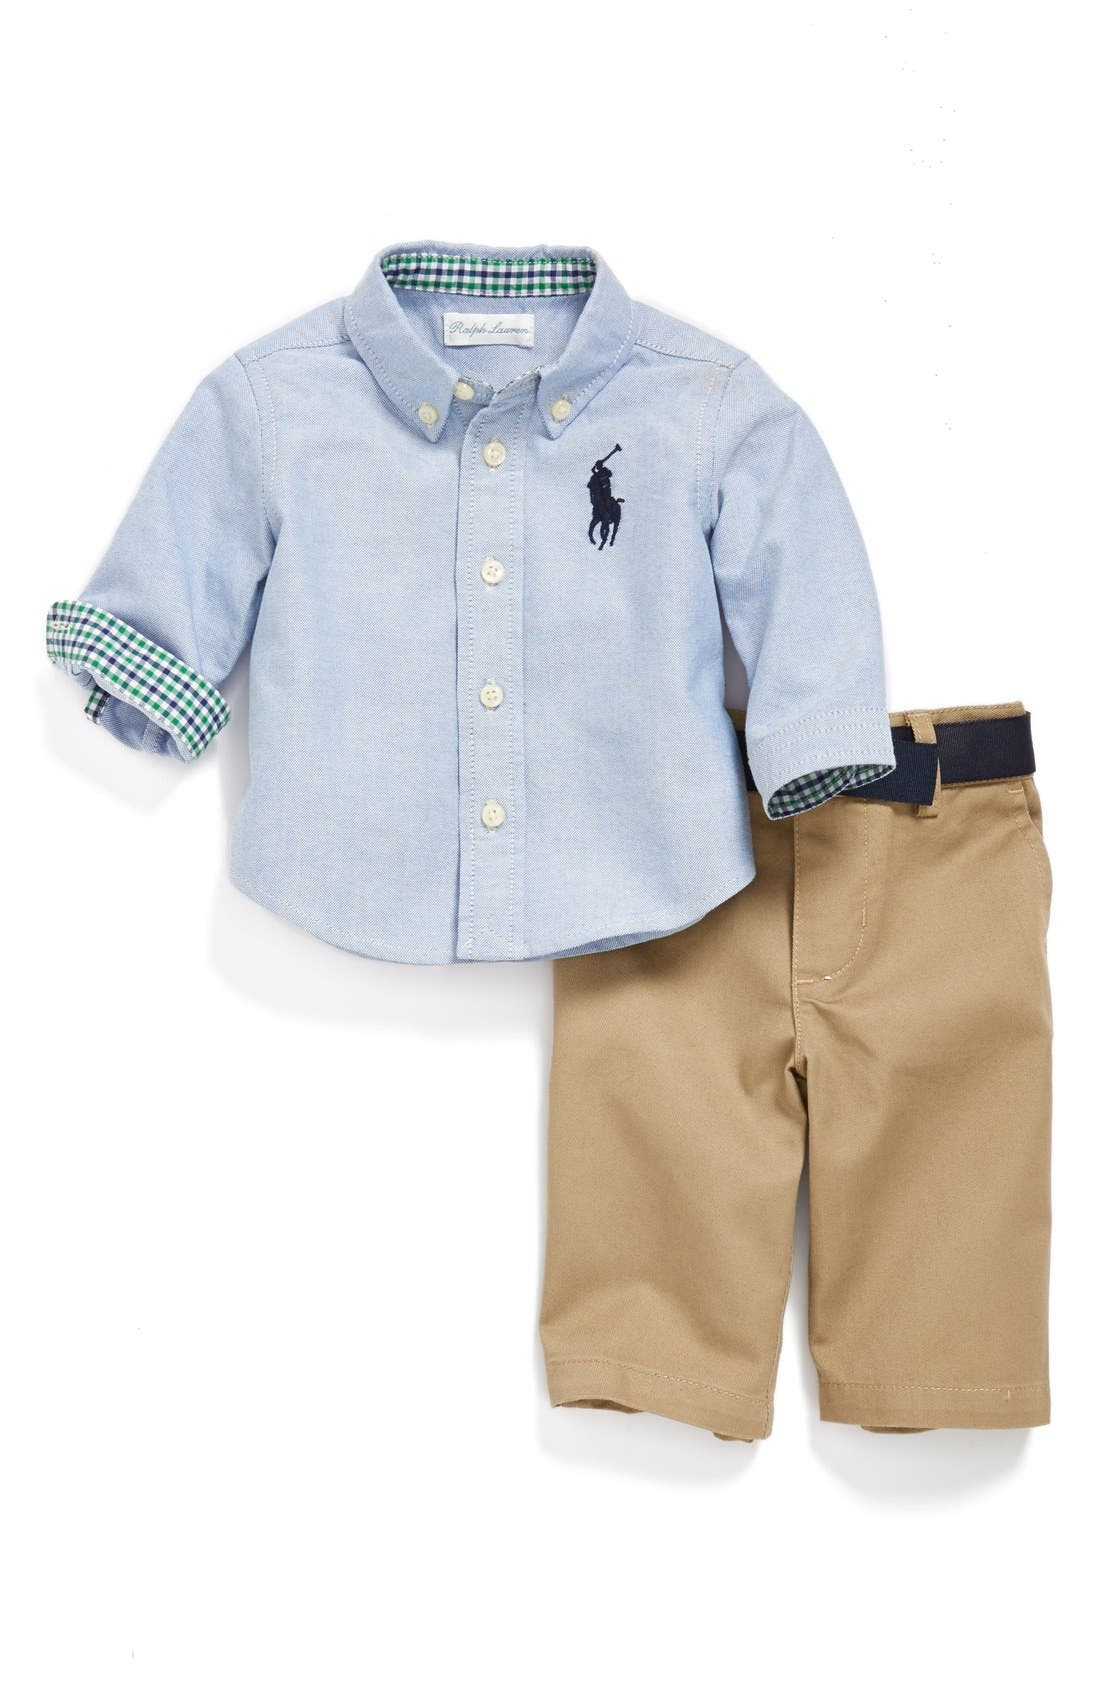 Alternate Image 1 Selected - Ralph Lauren Oxford Shirt & Chinos (Baby Boys)